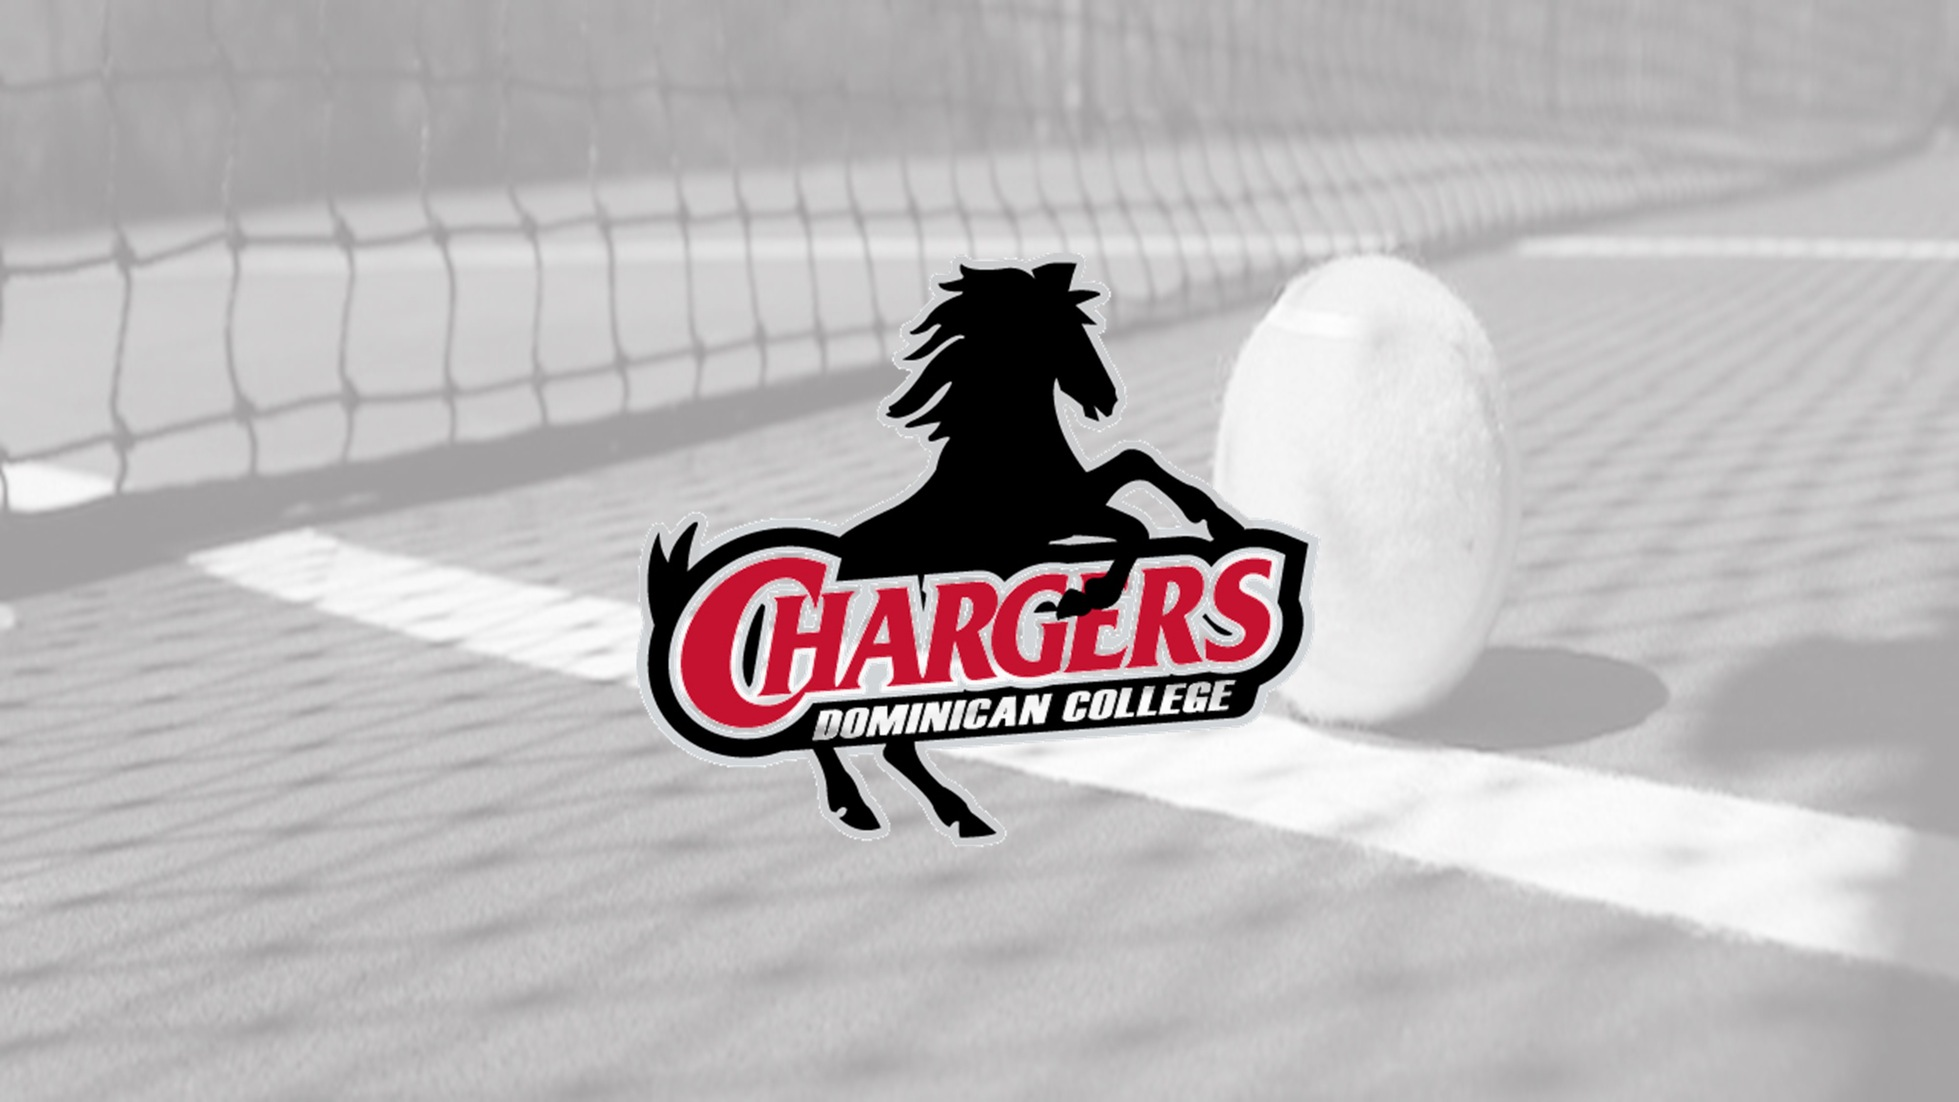 DOMINICAN COLLEGE TO ADD MEN'S AND WOMEN'S TENNIS TO 2019-2020 ATHLETICS LINEUP